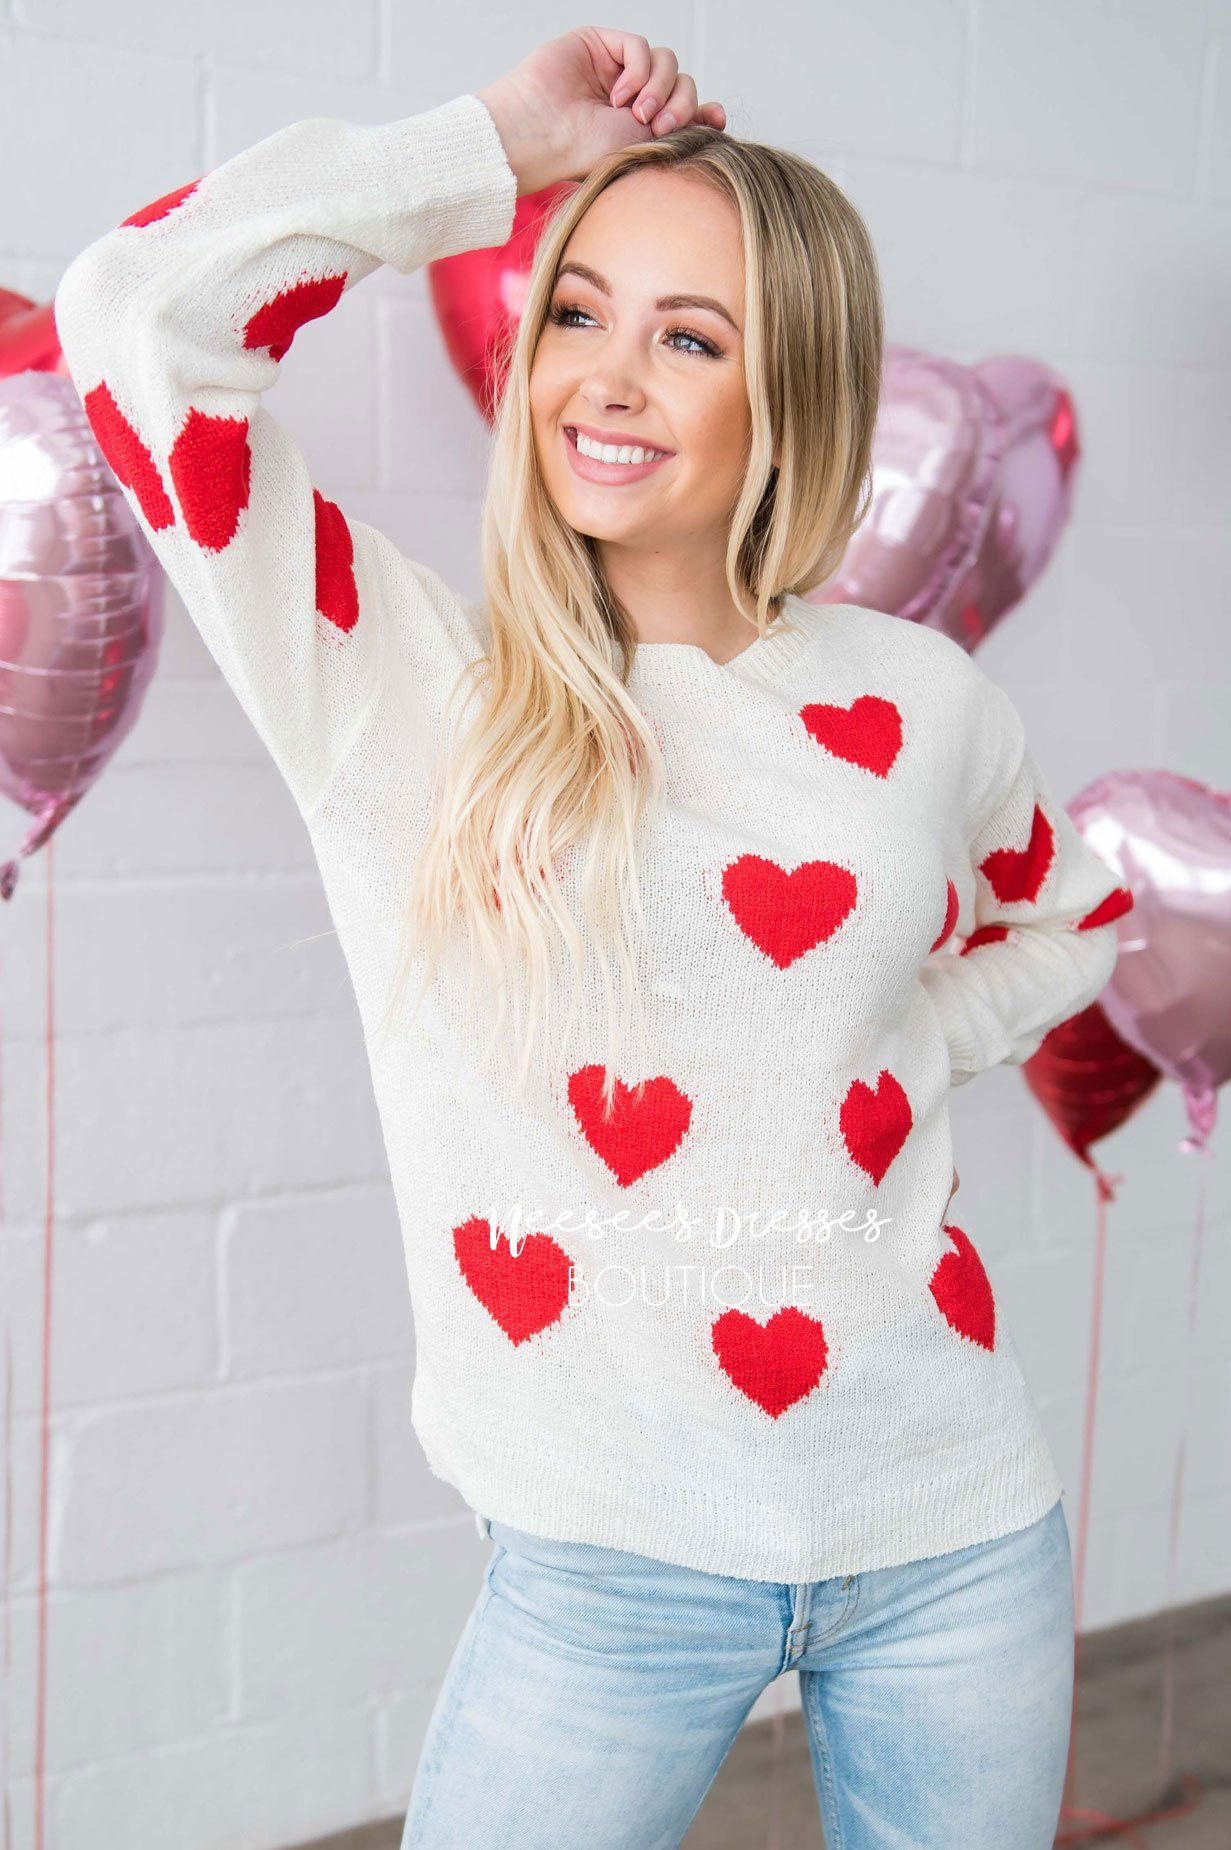 Sprinkled with Hearts Sweater